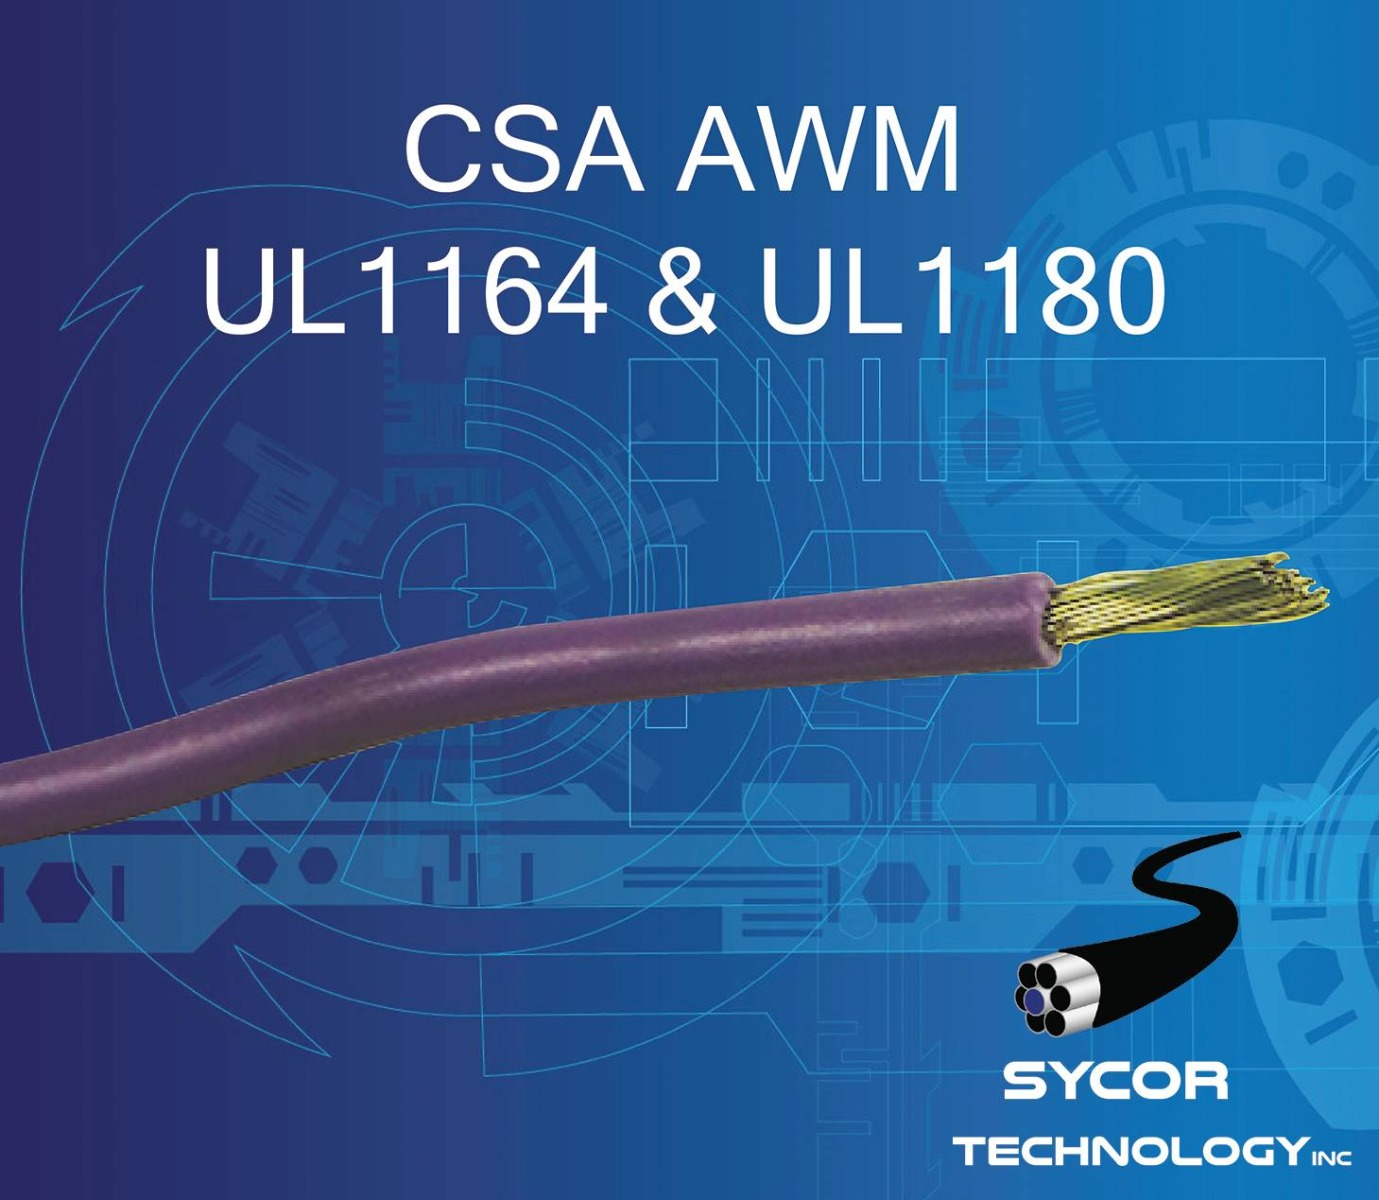 CSA AWM, UL1164, UL1180 hook-Up wire